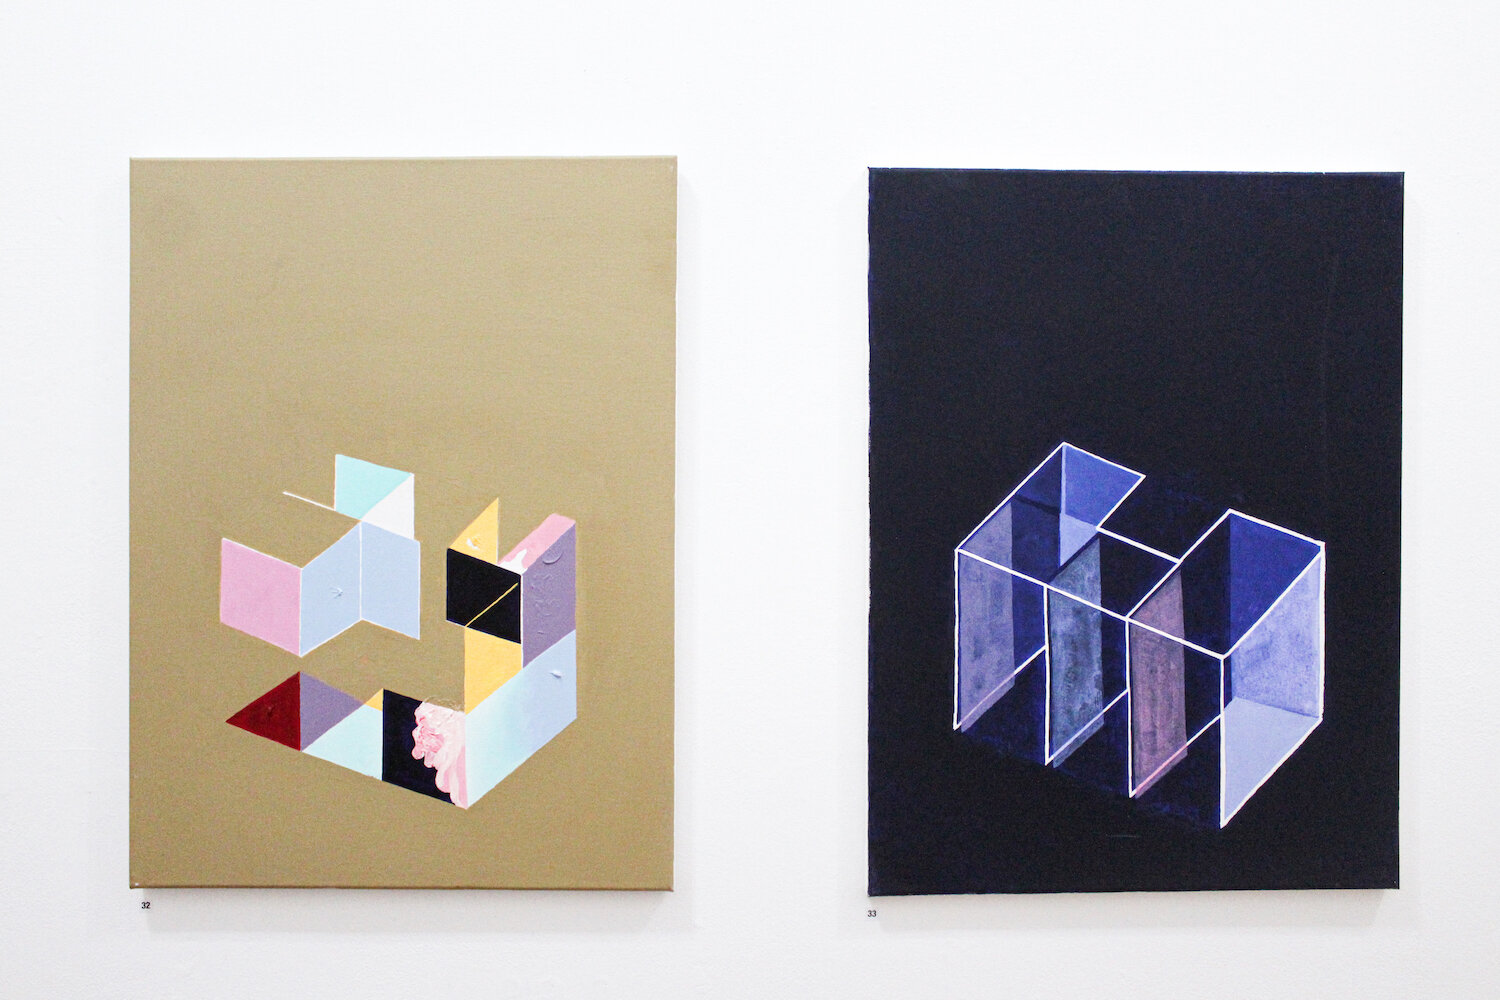 From left to right: Jessica You,  Rectangular Space,  acrylic on canvas, 45.5x61.5cm;  Extent  acrylic on canvas, 45.5x61.5cm.